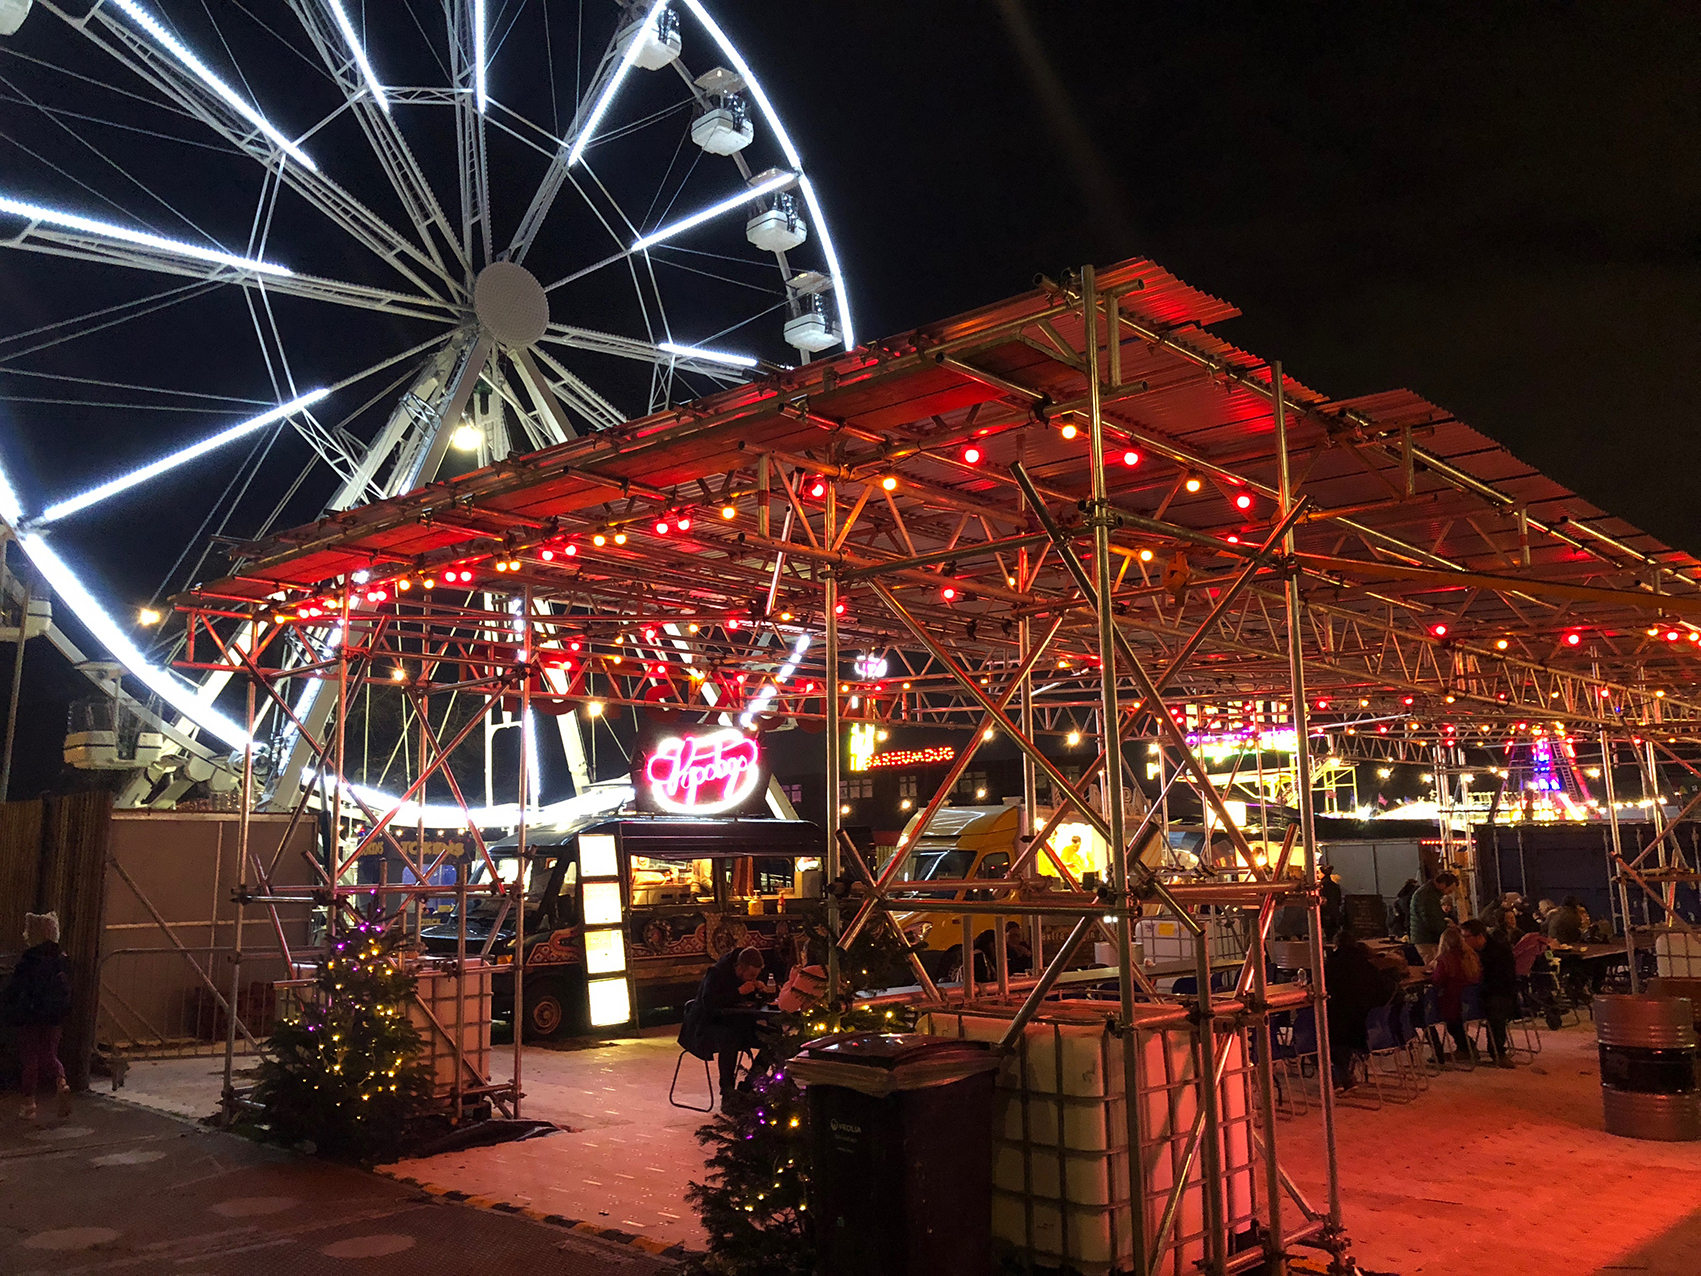 The Truck Stop area curated by Street Feast at Winterville, 5 food trucks overlooked by the Big Wheel